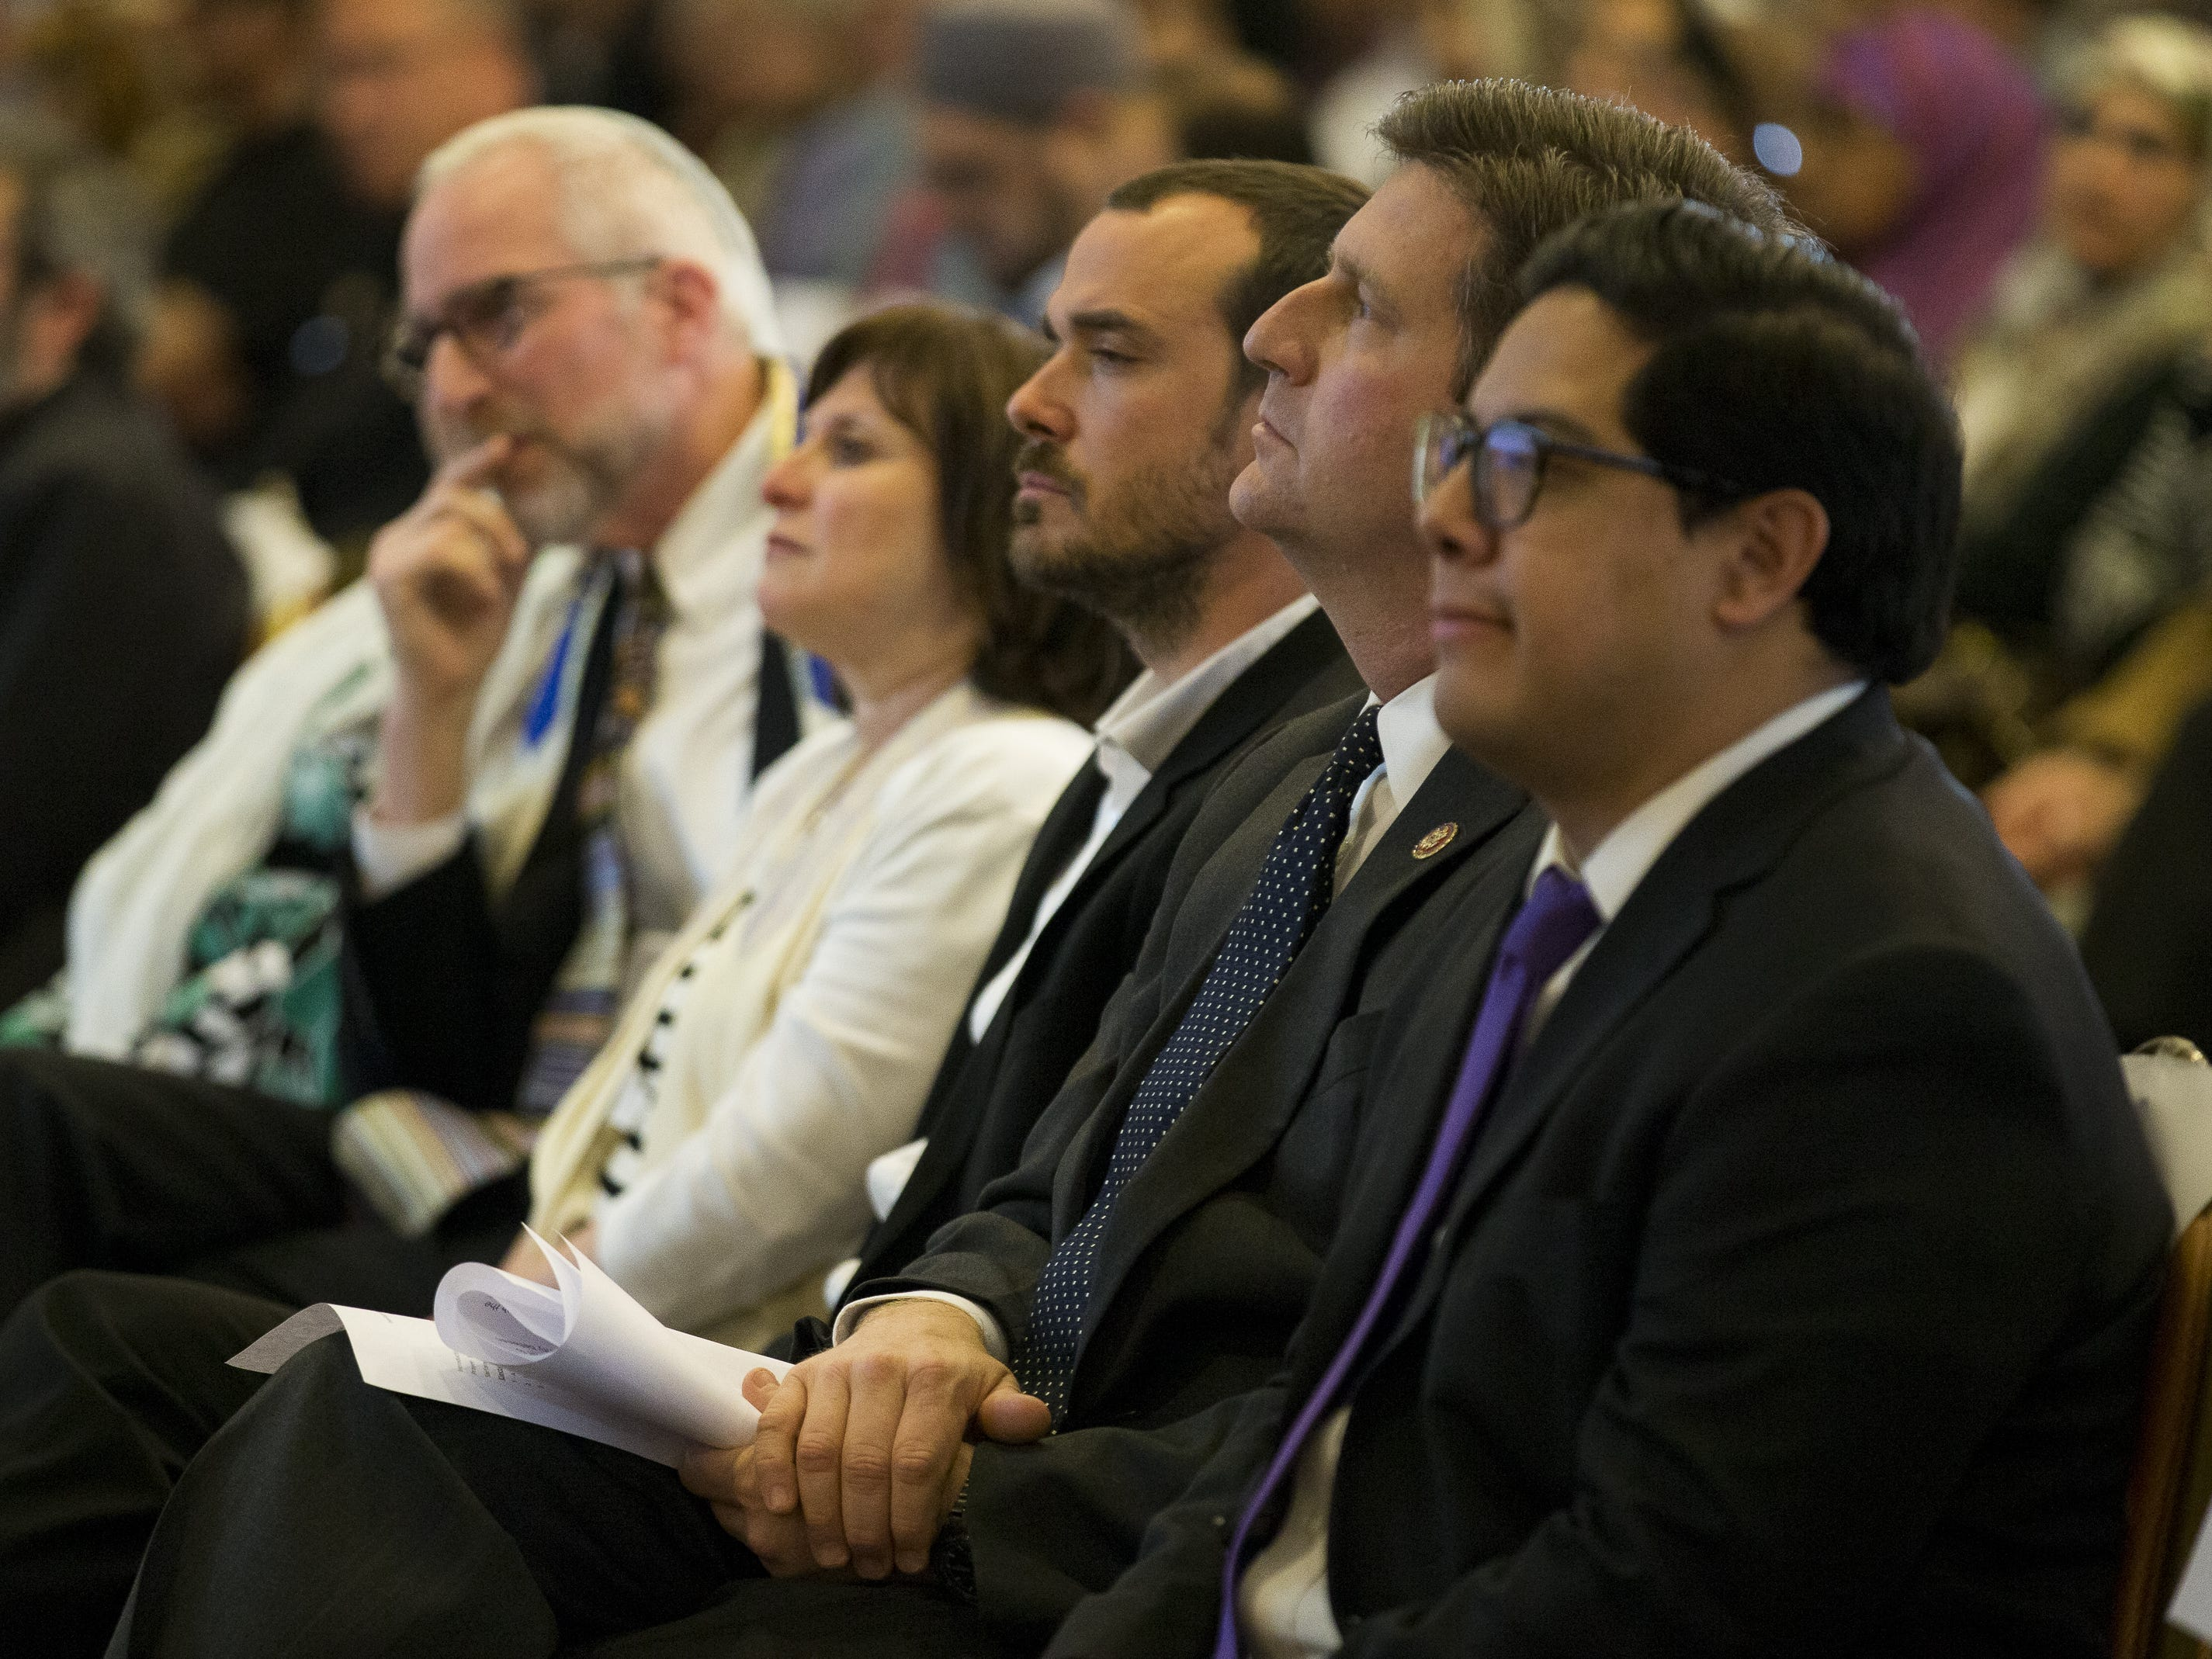 U.S. Rep. Greg Stanton (second from right) sits at a vigil held at the Islamic Center of Northeast Valley in Scottsdale, Ariz., on Sunday, March 17, 2019, in memory of the Christchurch New Zealand shooting victims.